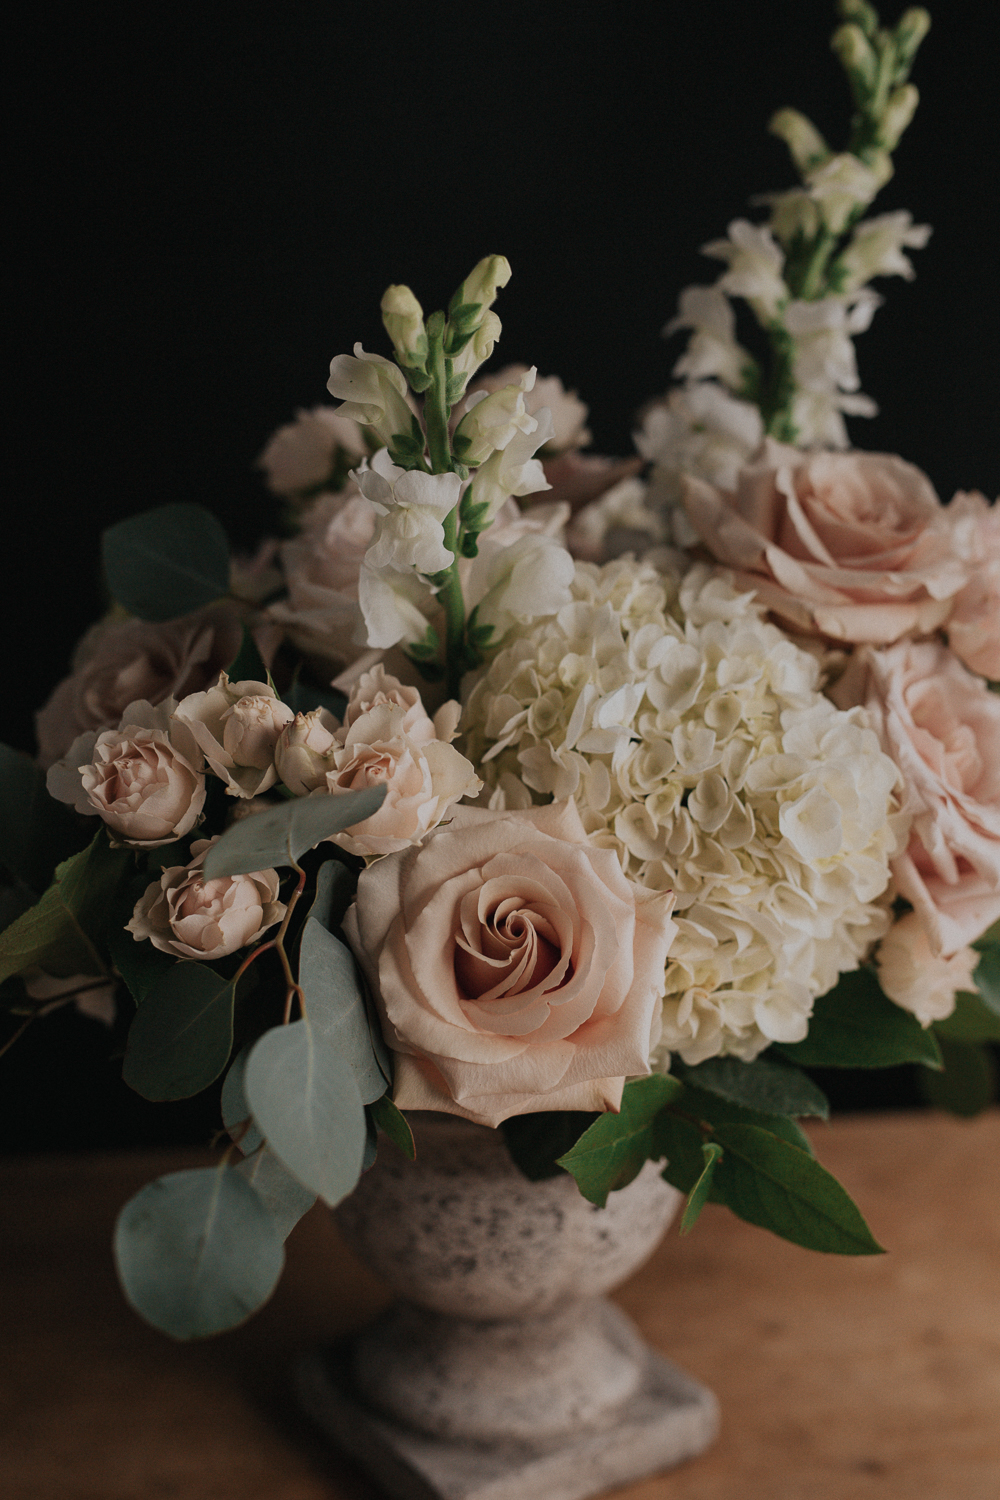 Wedding A La Cart - If you love our work, but are looking for a small collection, our A La Cart option is right for you. It's quick and simple. You choose the arrangements you want, we deliver them to your preferred location. Click here to view our designs.